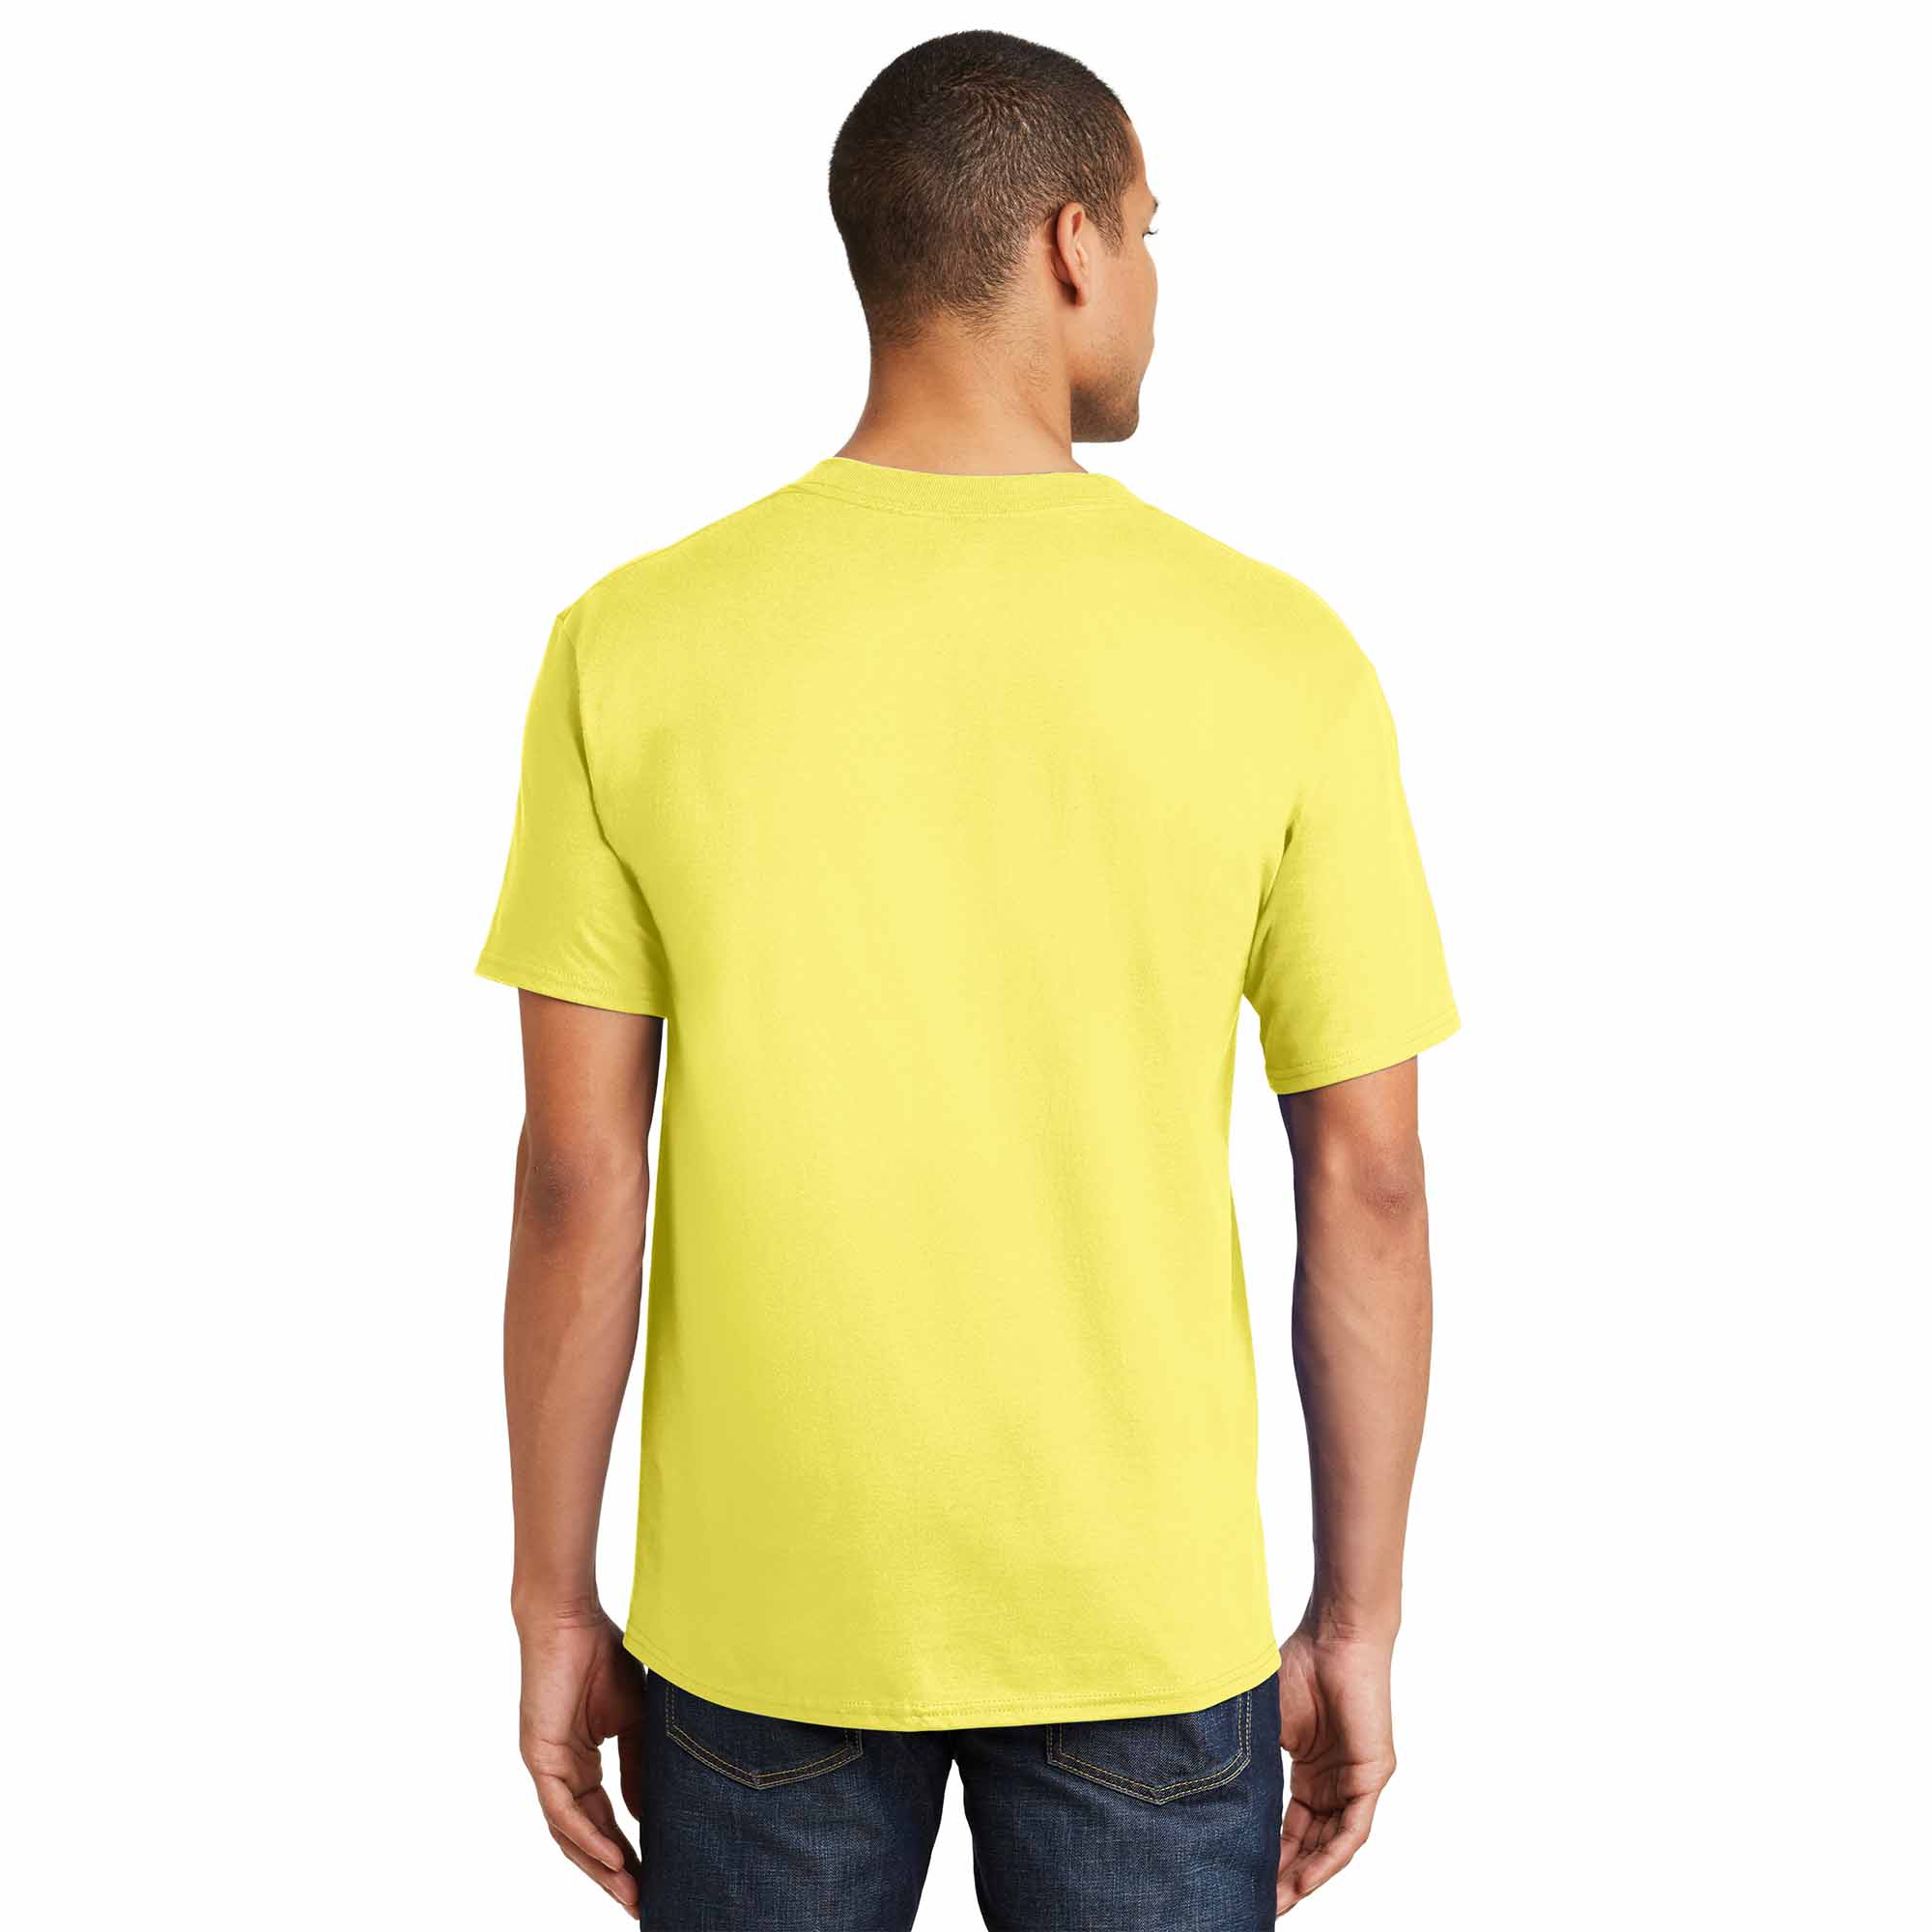 Hanes 5180 Beefy T Cotton T Shirt Yellow